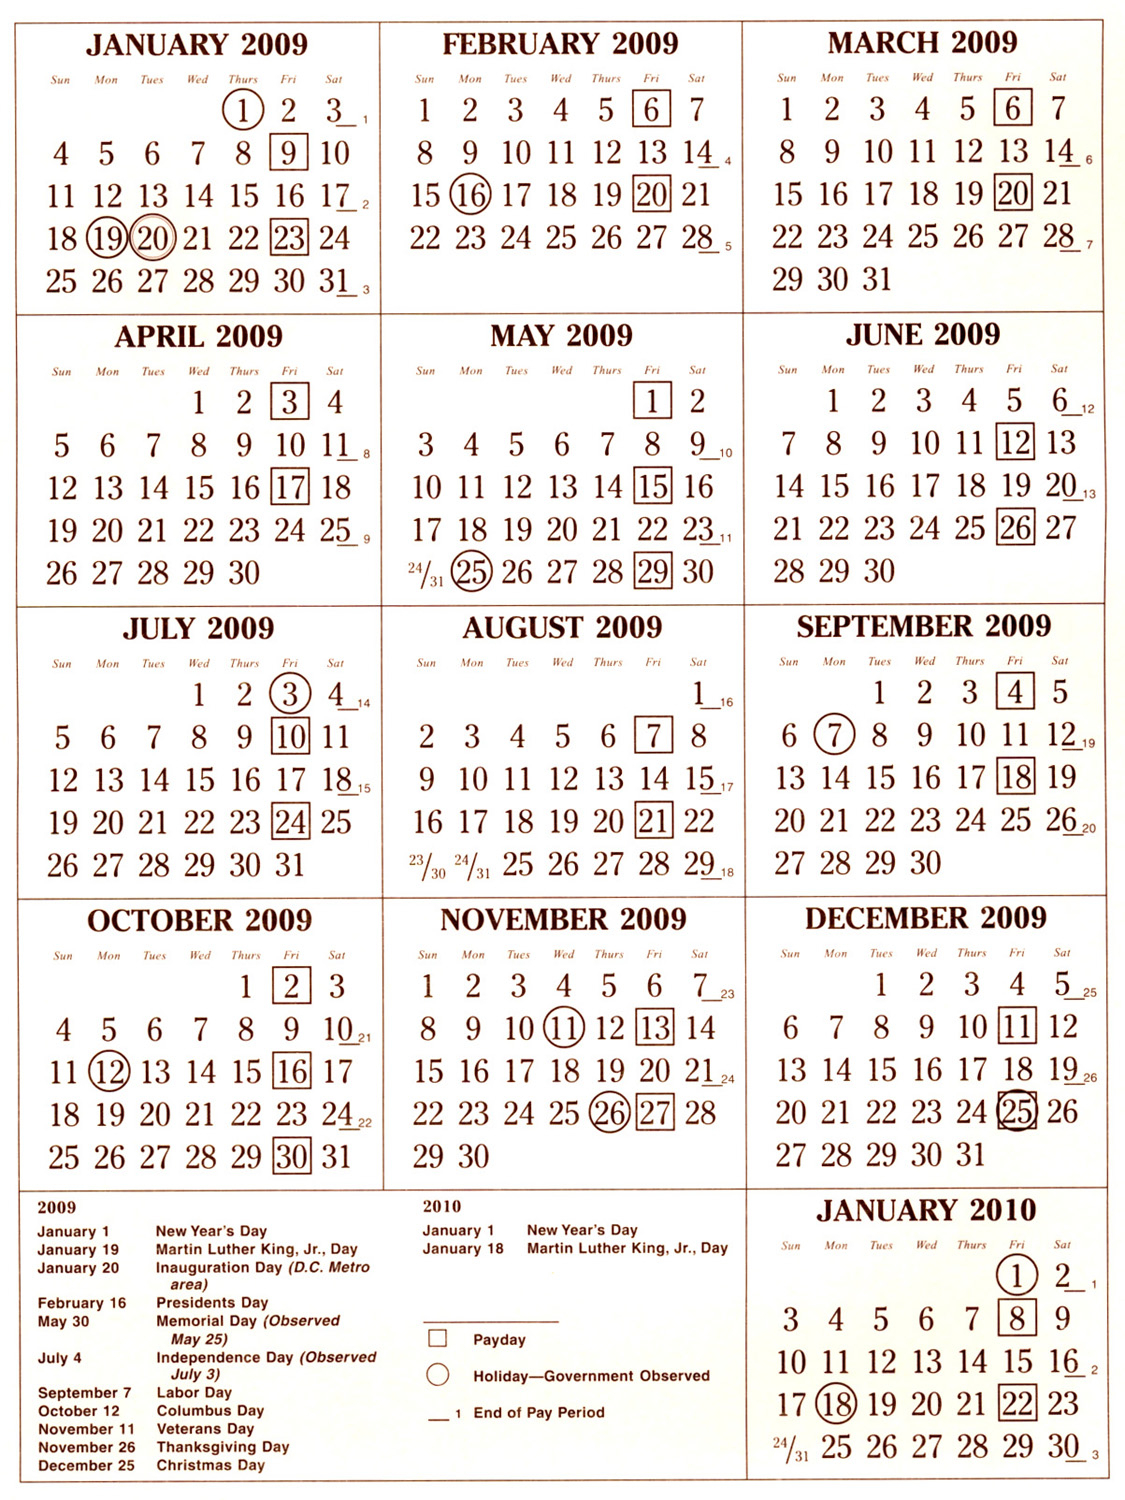 Stavros 2019 Calendar | Payroll Calendars pertaining to Hhs Payroll Calendar 2020 Color